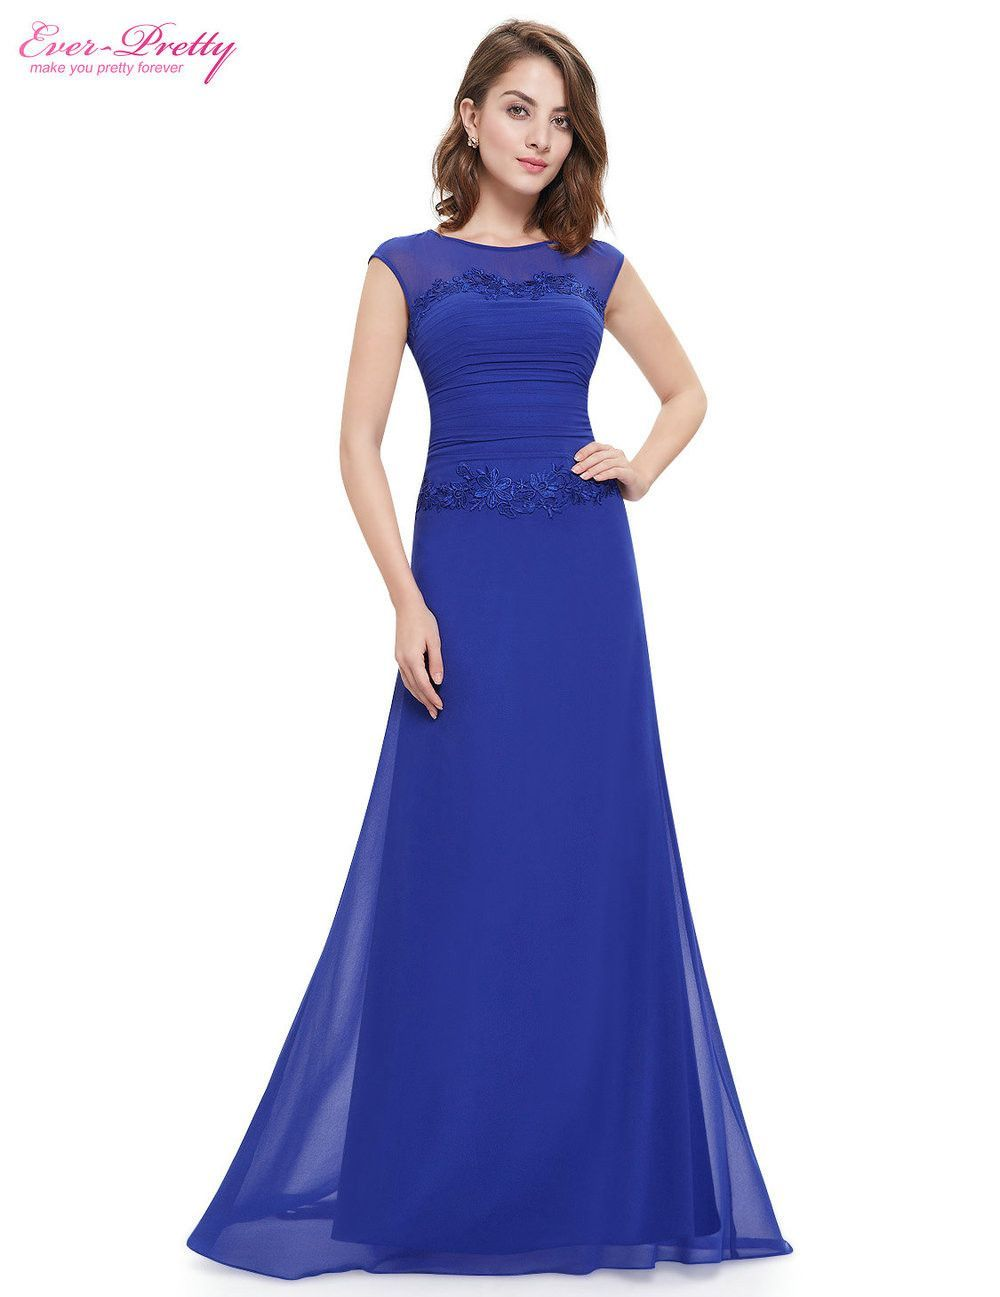 Wedding party dress ever pretty new arrival he women